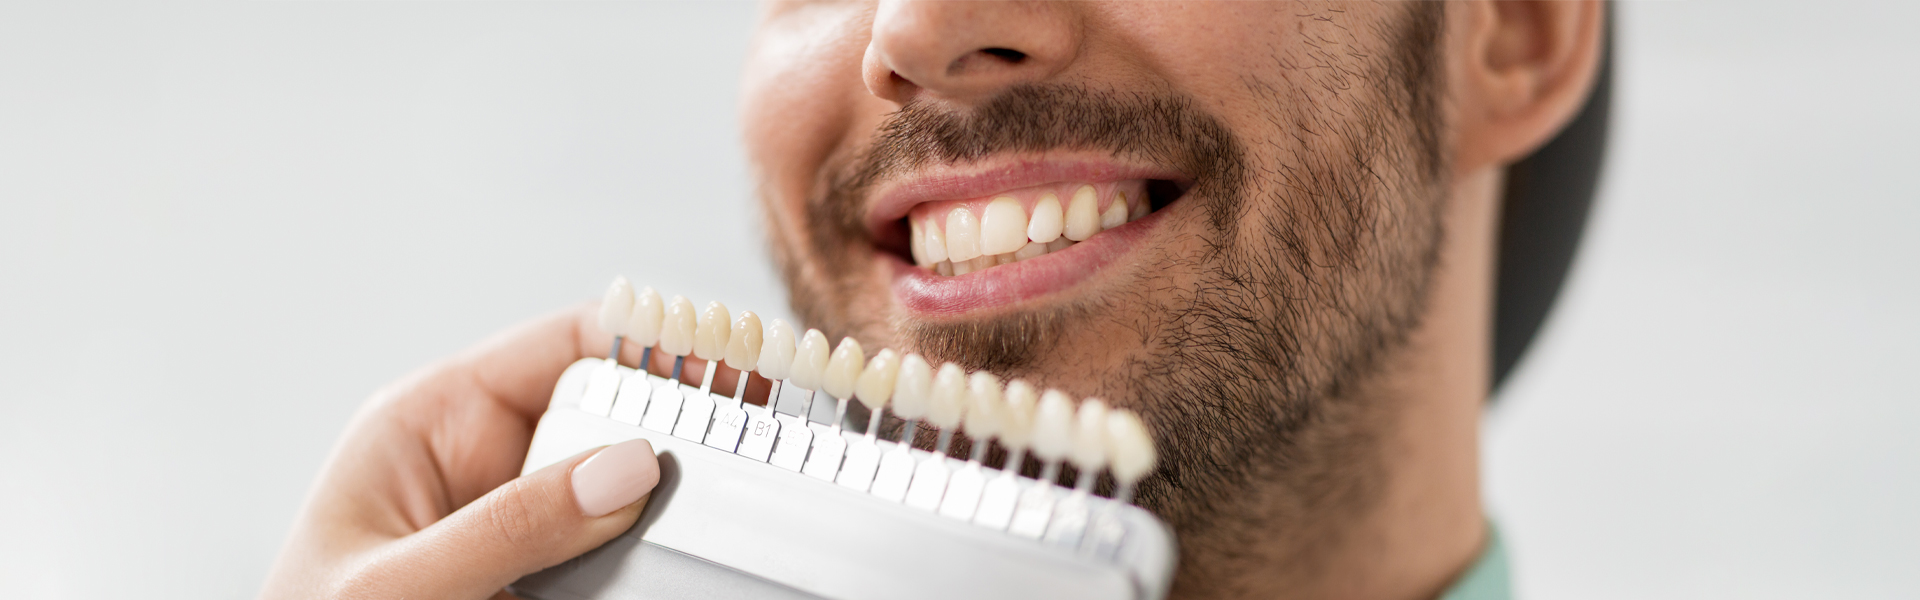 Different Ways to Use Dental Veneers In Dentistry